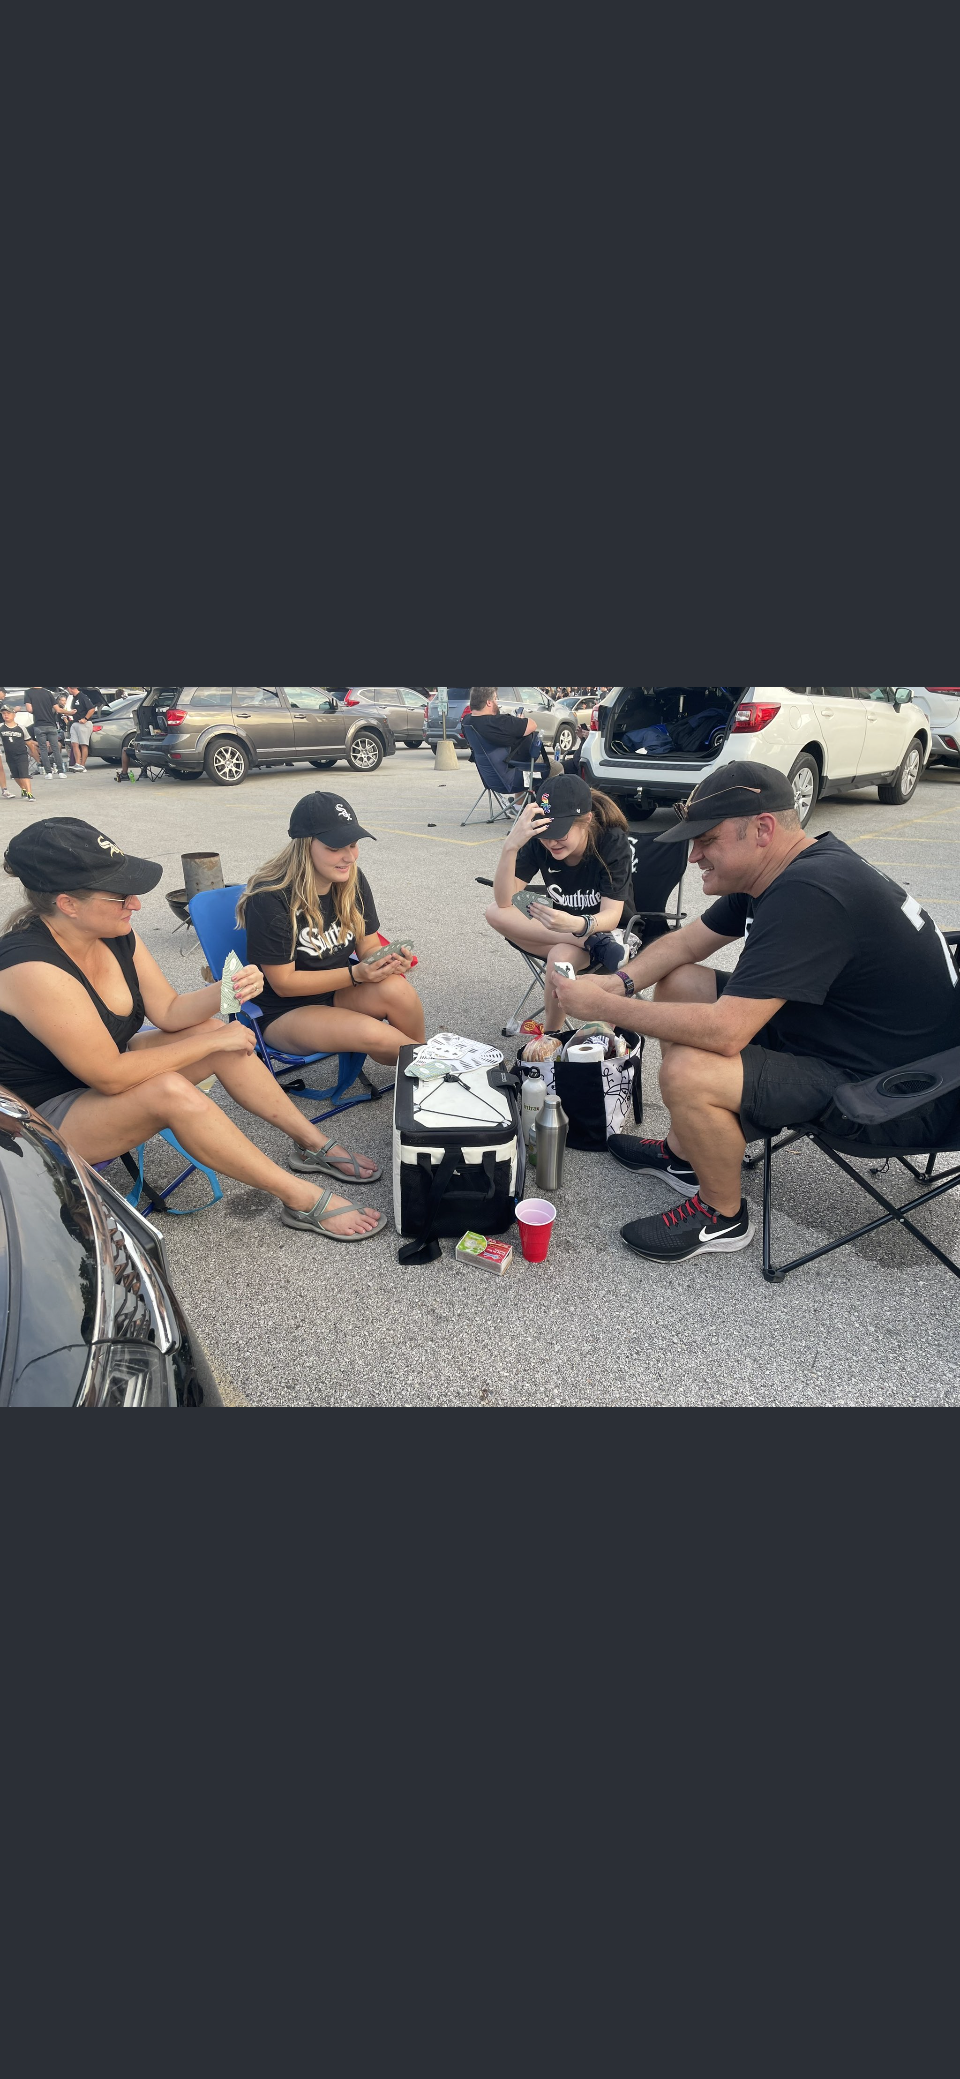 White Sox fans ascended Sunday to the parking lots outside Guaranteed Rate Field in anticipation for Game 3 of the American League Division Series.